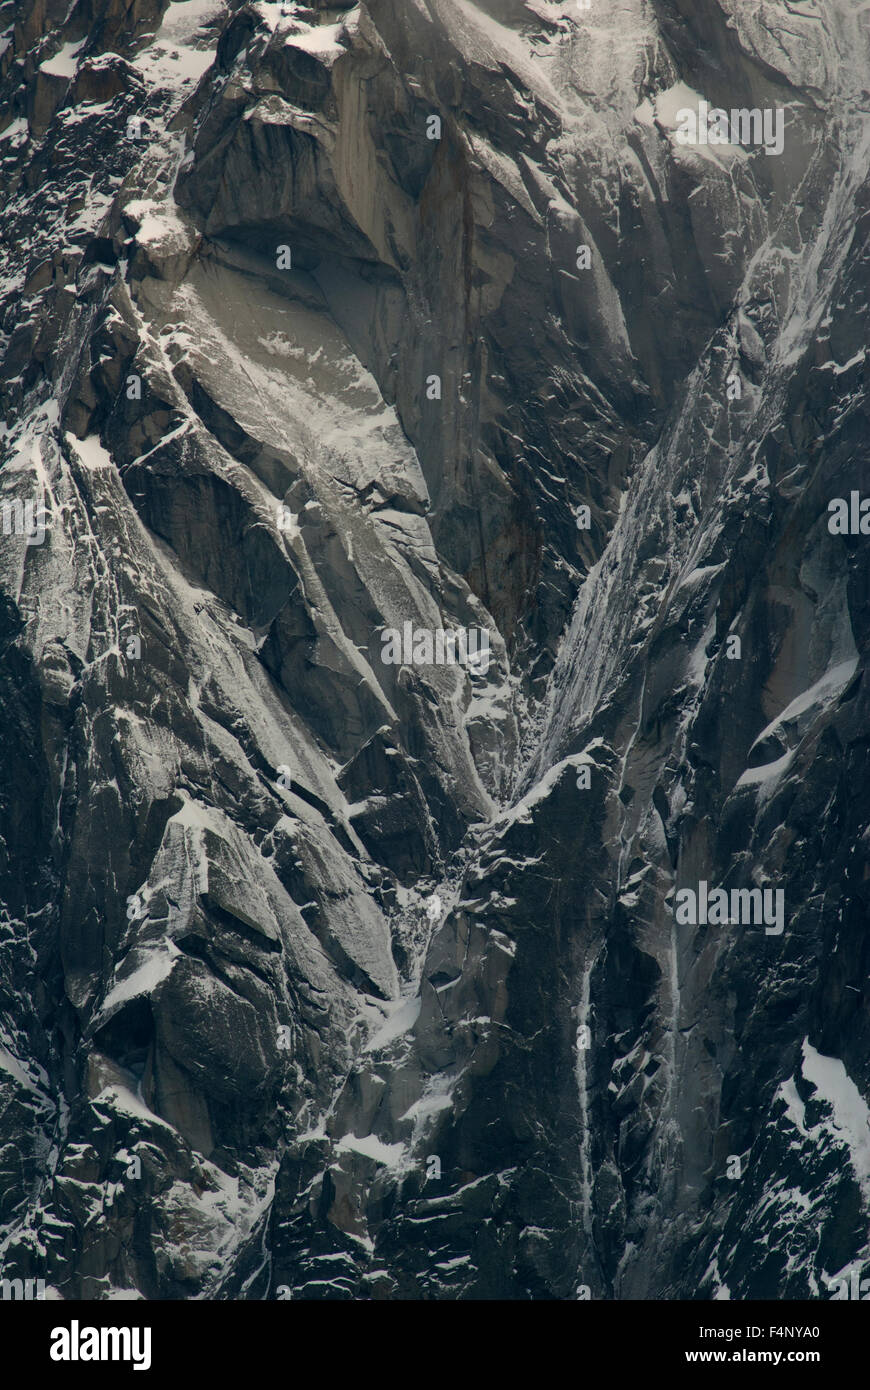 Close up of rock face dusted with snow - Stock Image